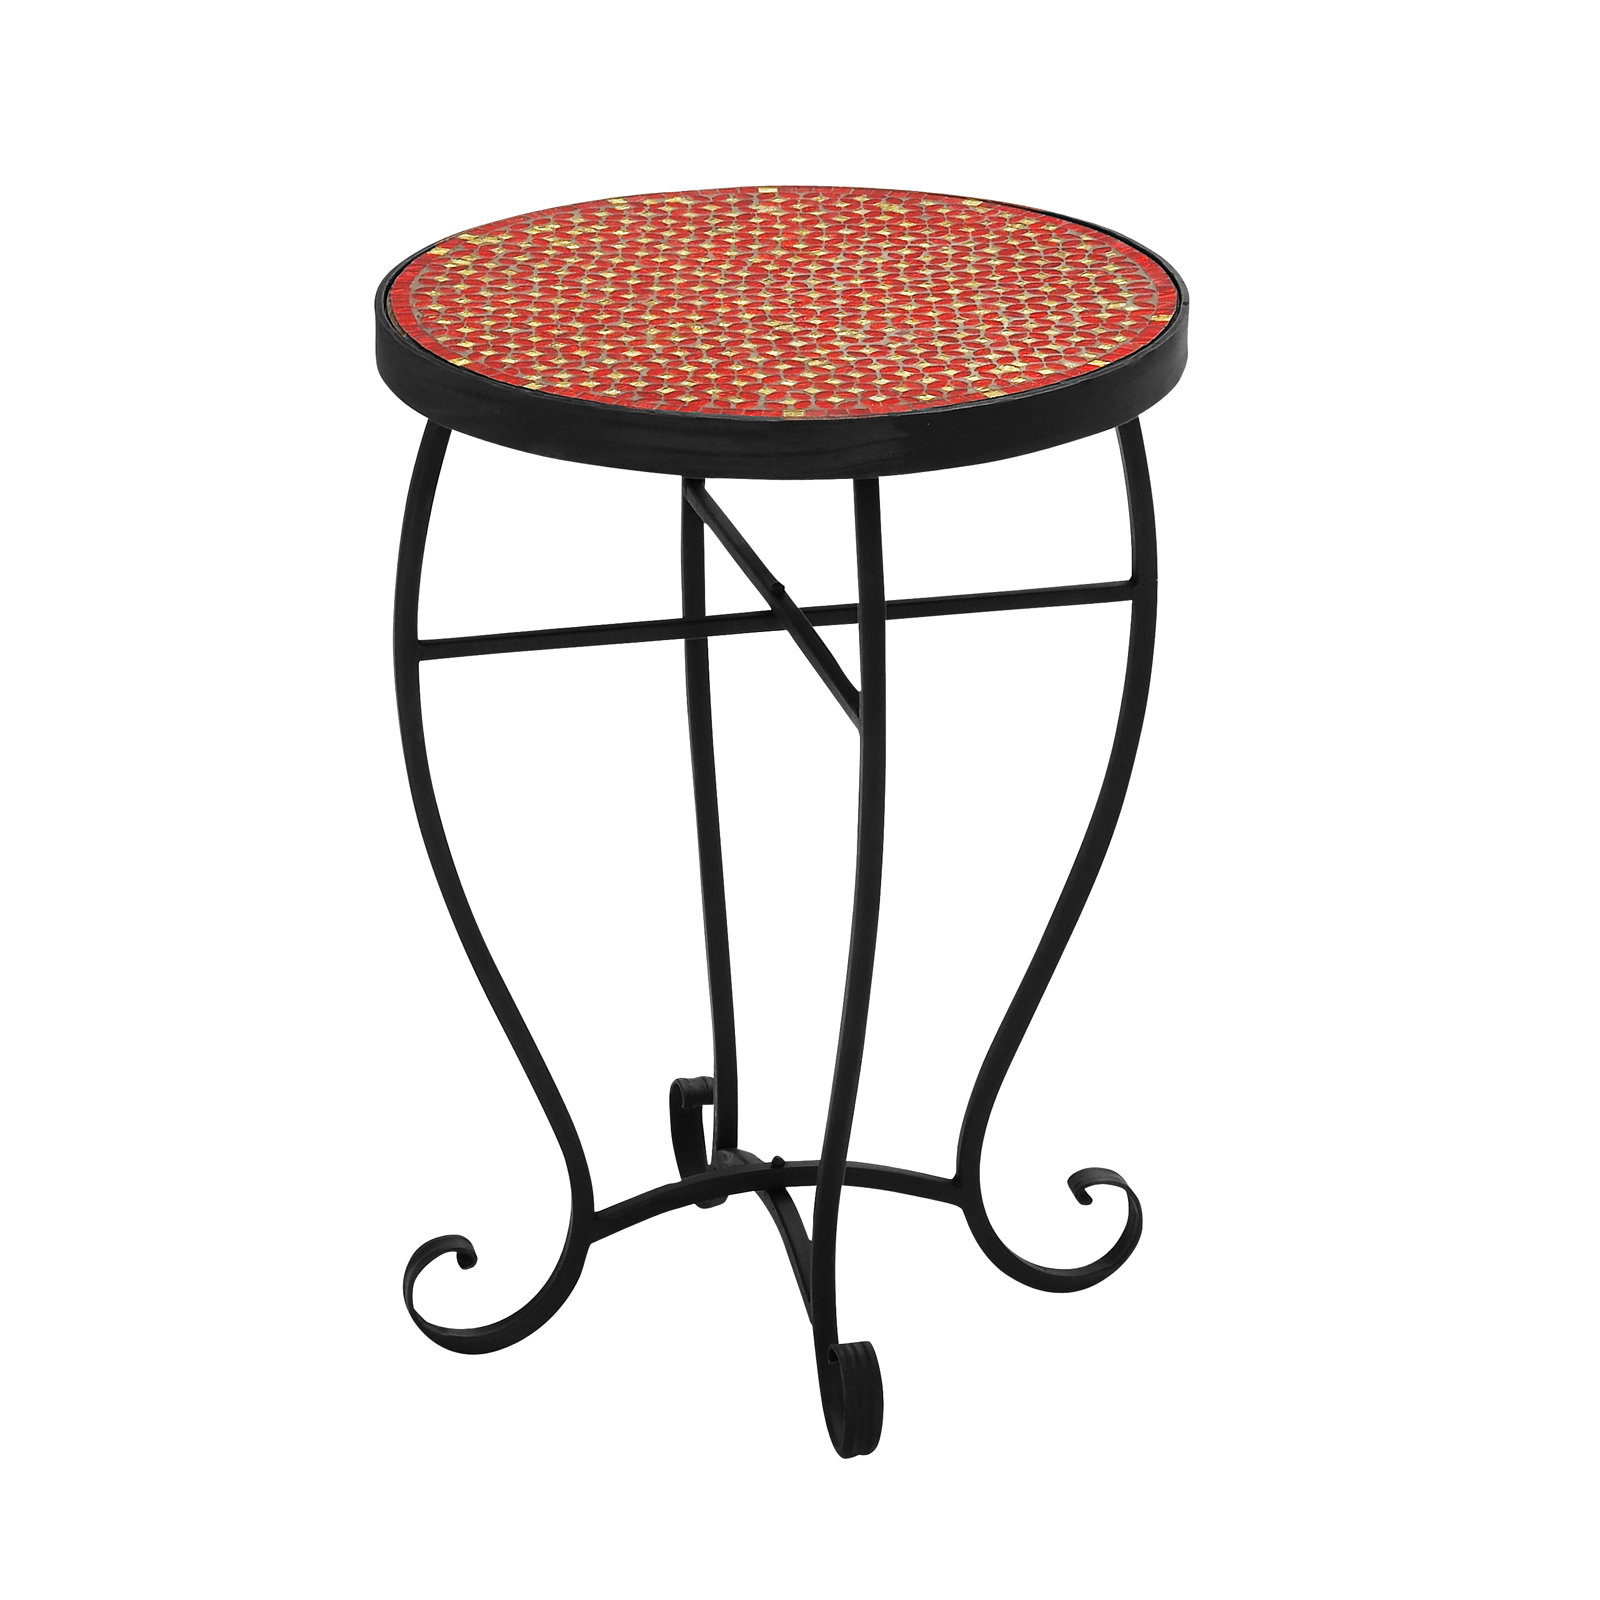 mosaic end table outdoor droughtrelief moroccan stone accent urban designs reviews unique rustic tables resin wicker patio furniture drum throne parts black lamp for living room